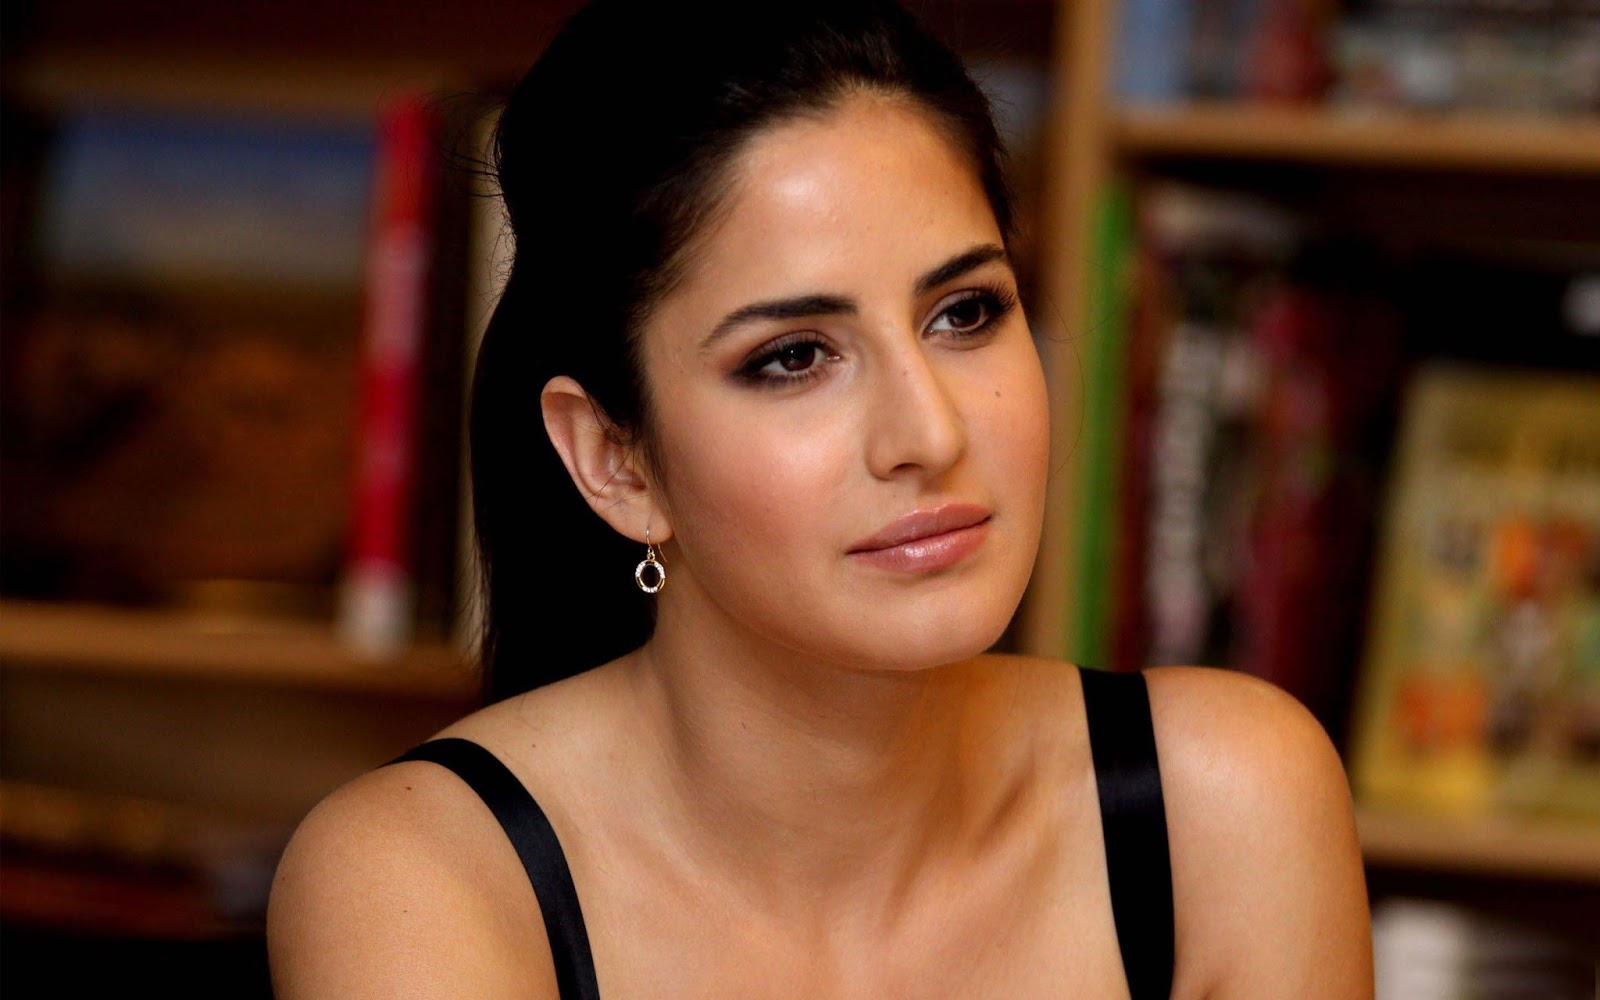 katrina kaif latest hd pictures / katrina kaif full hd photos